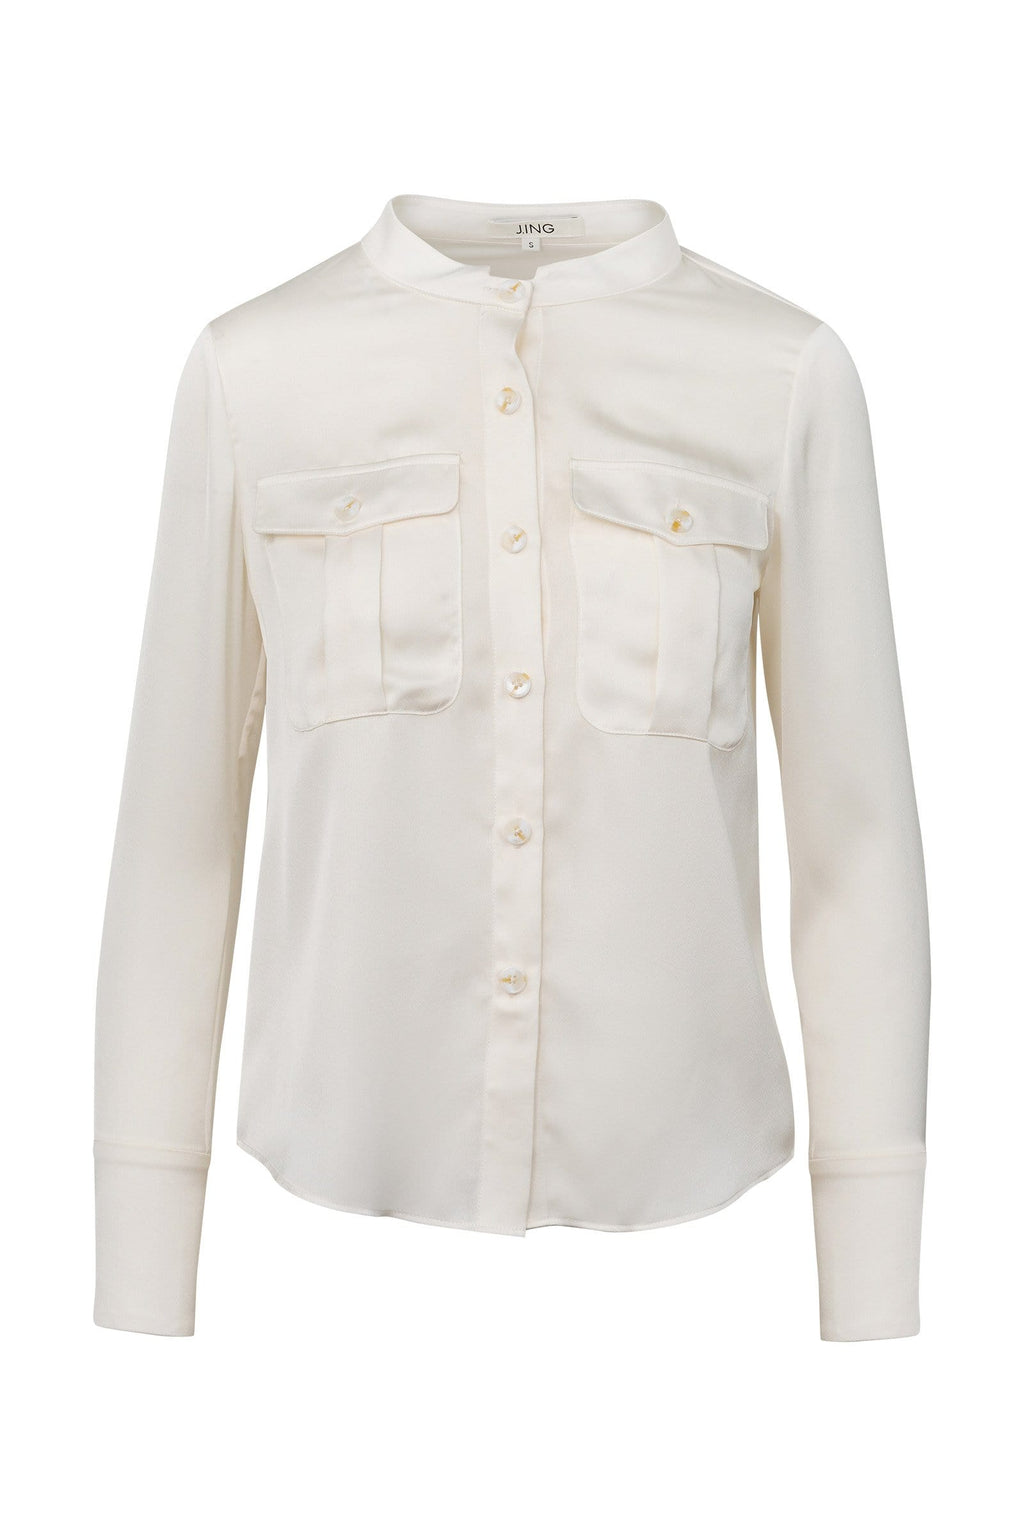 Colleen White Collarless Blouse by J.ING Women's Apparel